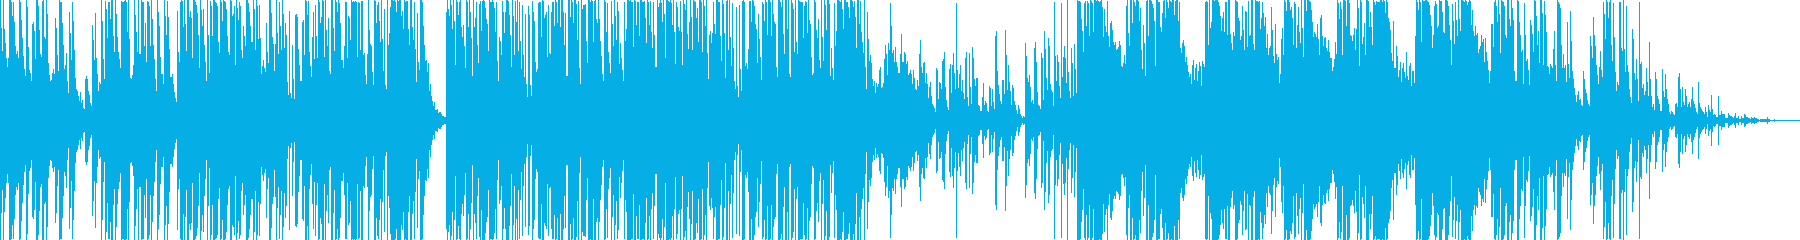 Japanese style disaster Bloody Shuraba's reproduced waveform